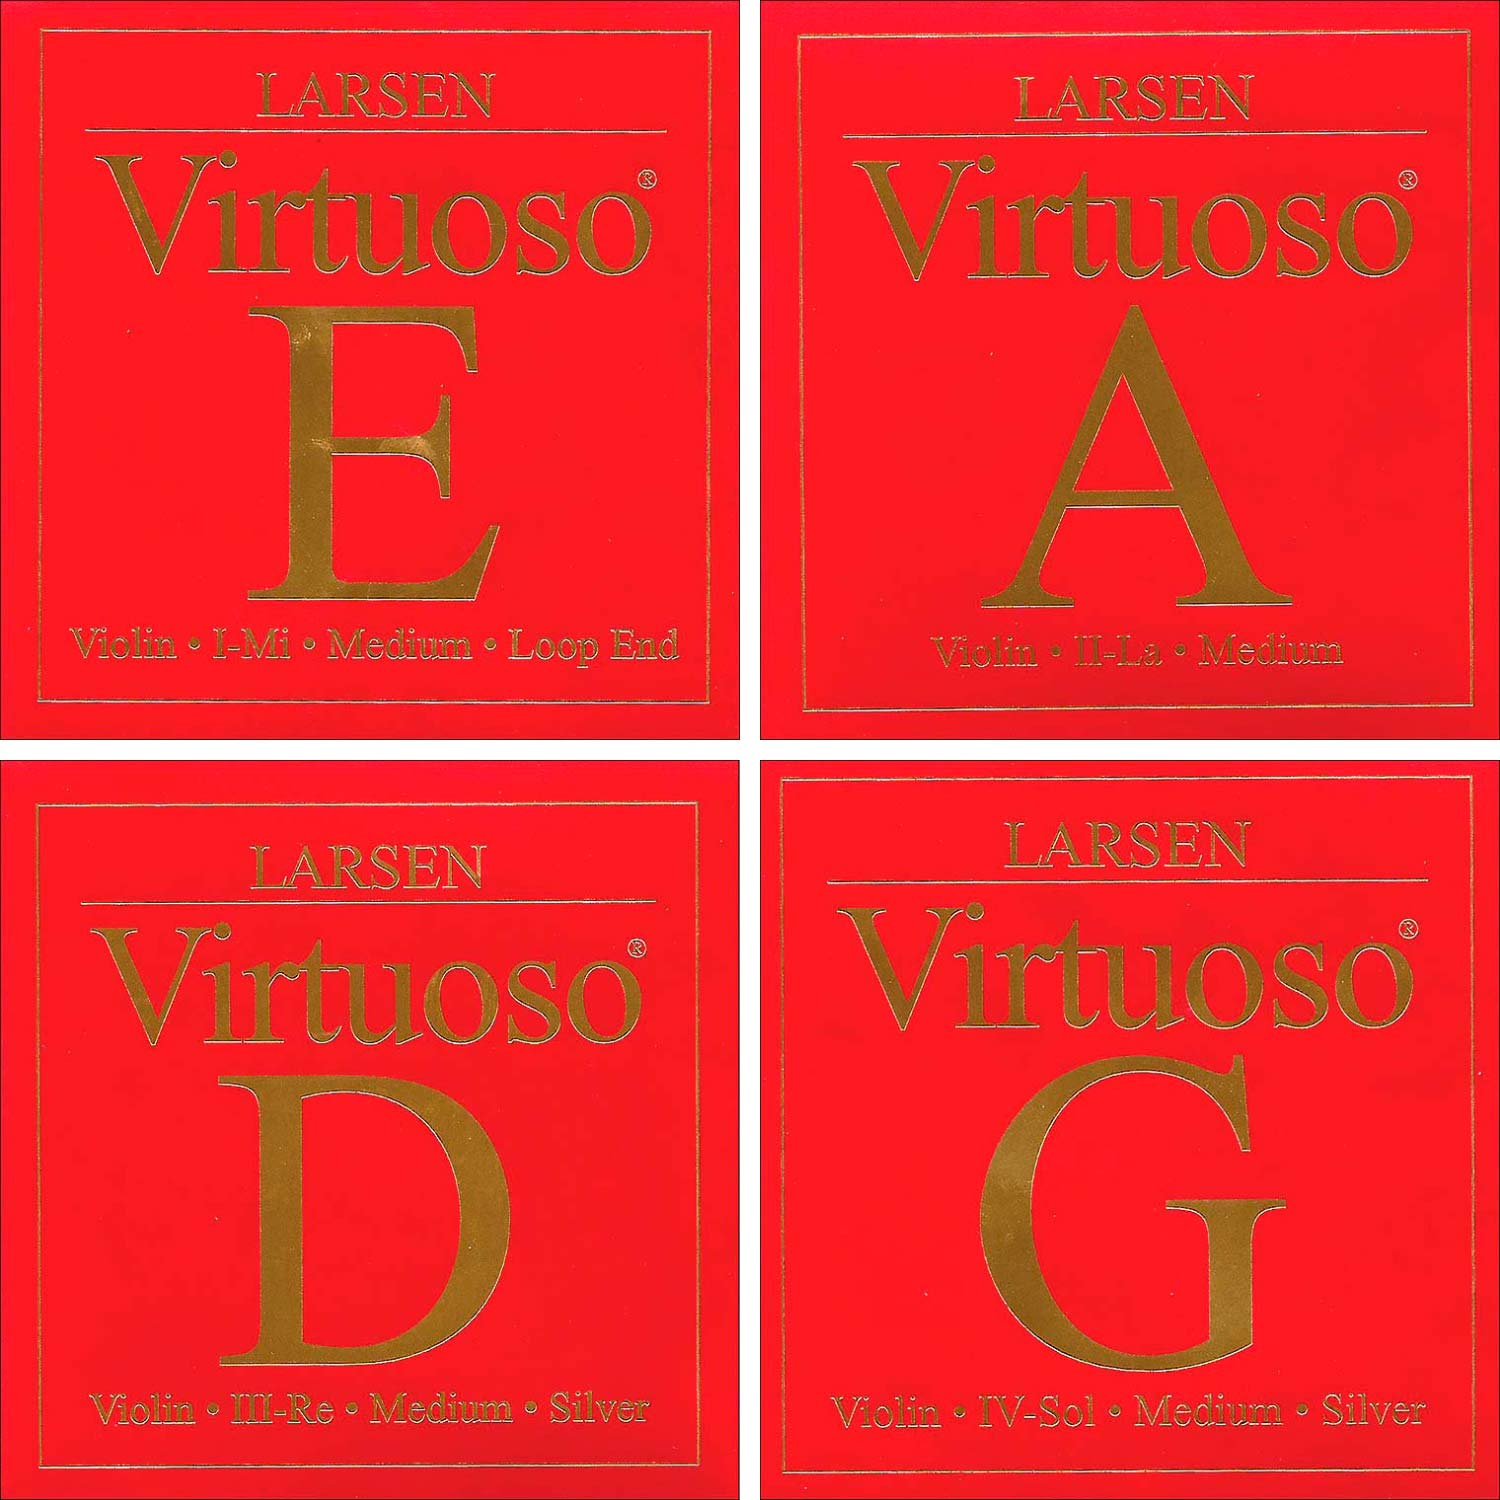 Larsen Virtuoso 4 4 Violin String Set Medium Gauge Loop End E by Larsen